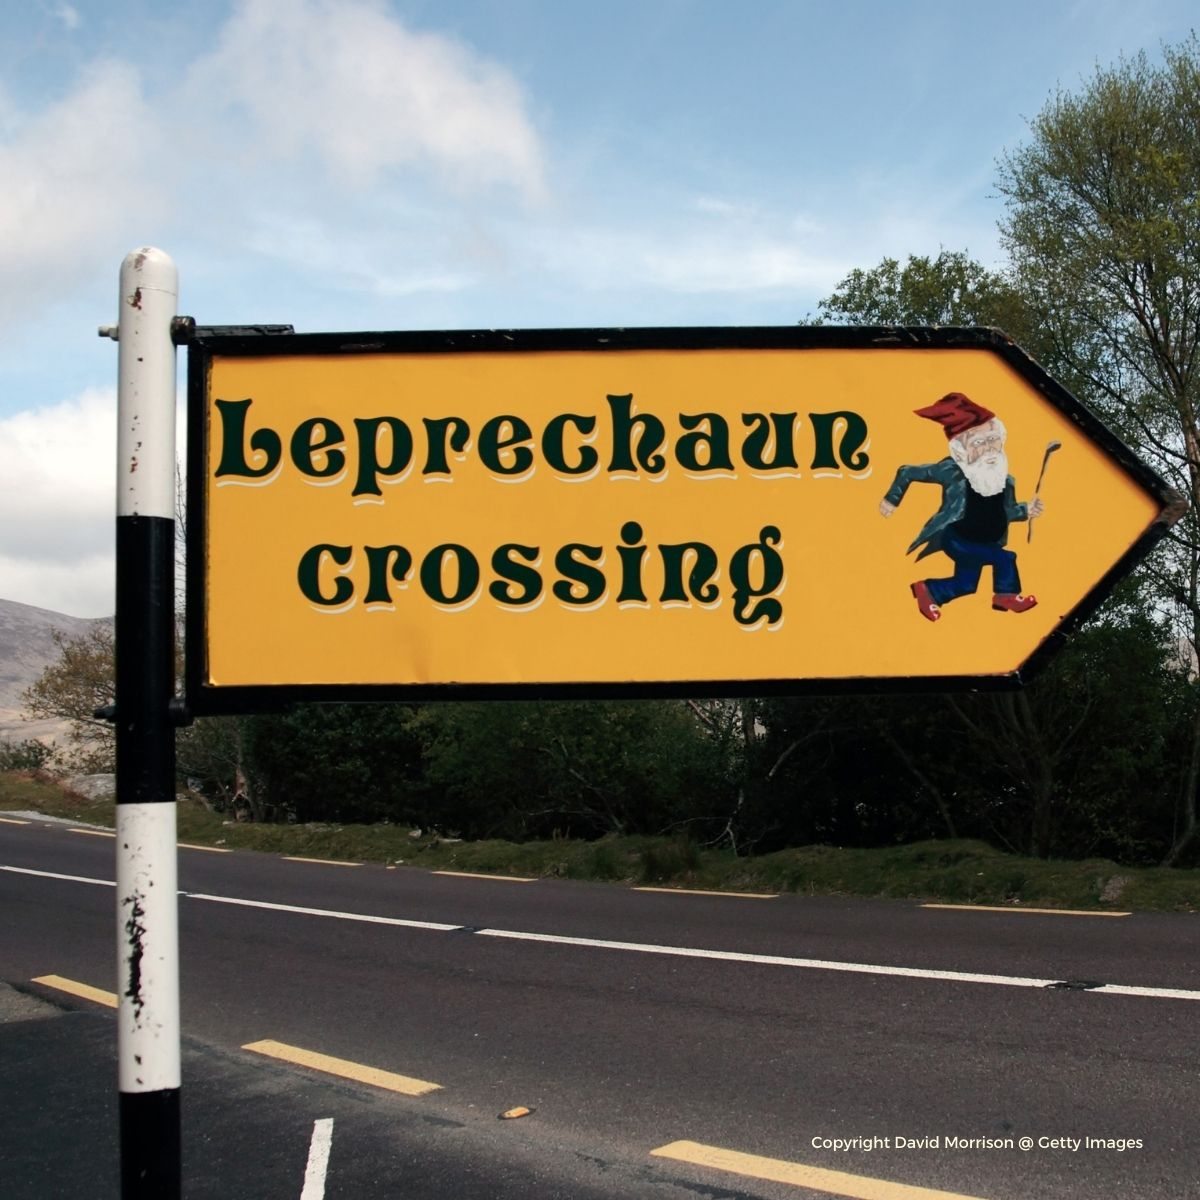 Leprechaun crossing road sign